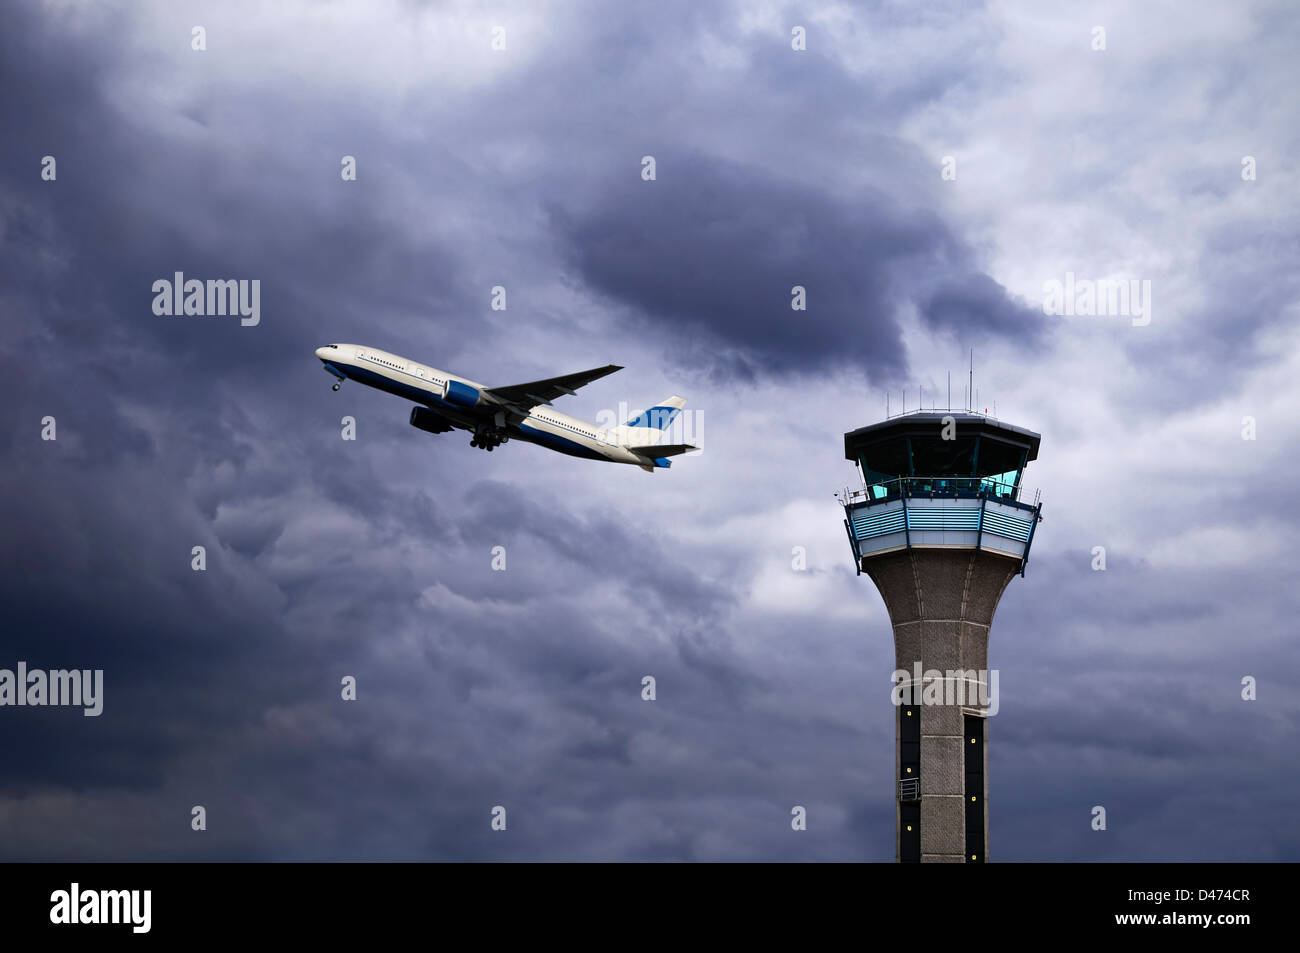 Air Traffic Control Tower with a Plane Taking Off. Luton Airport, UK. - Stock Image